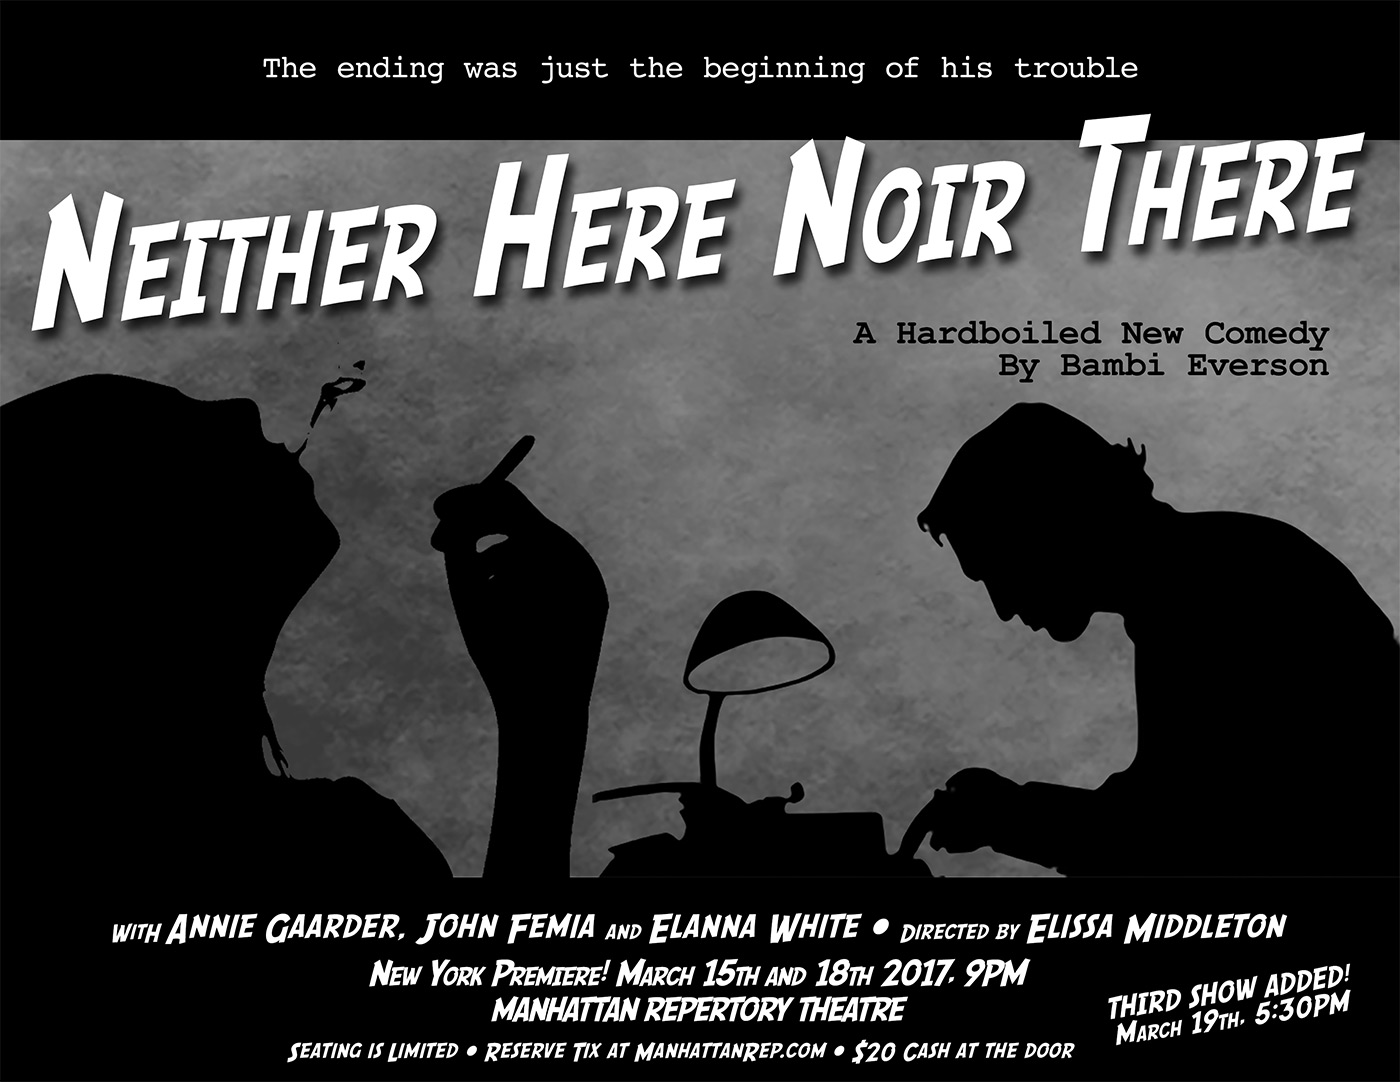 Neither Here, Noir There by Bambi Everson